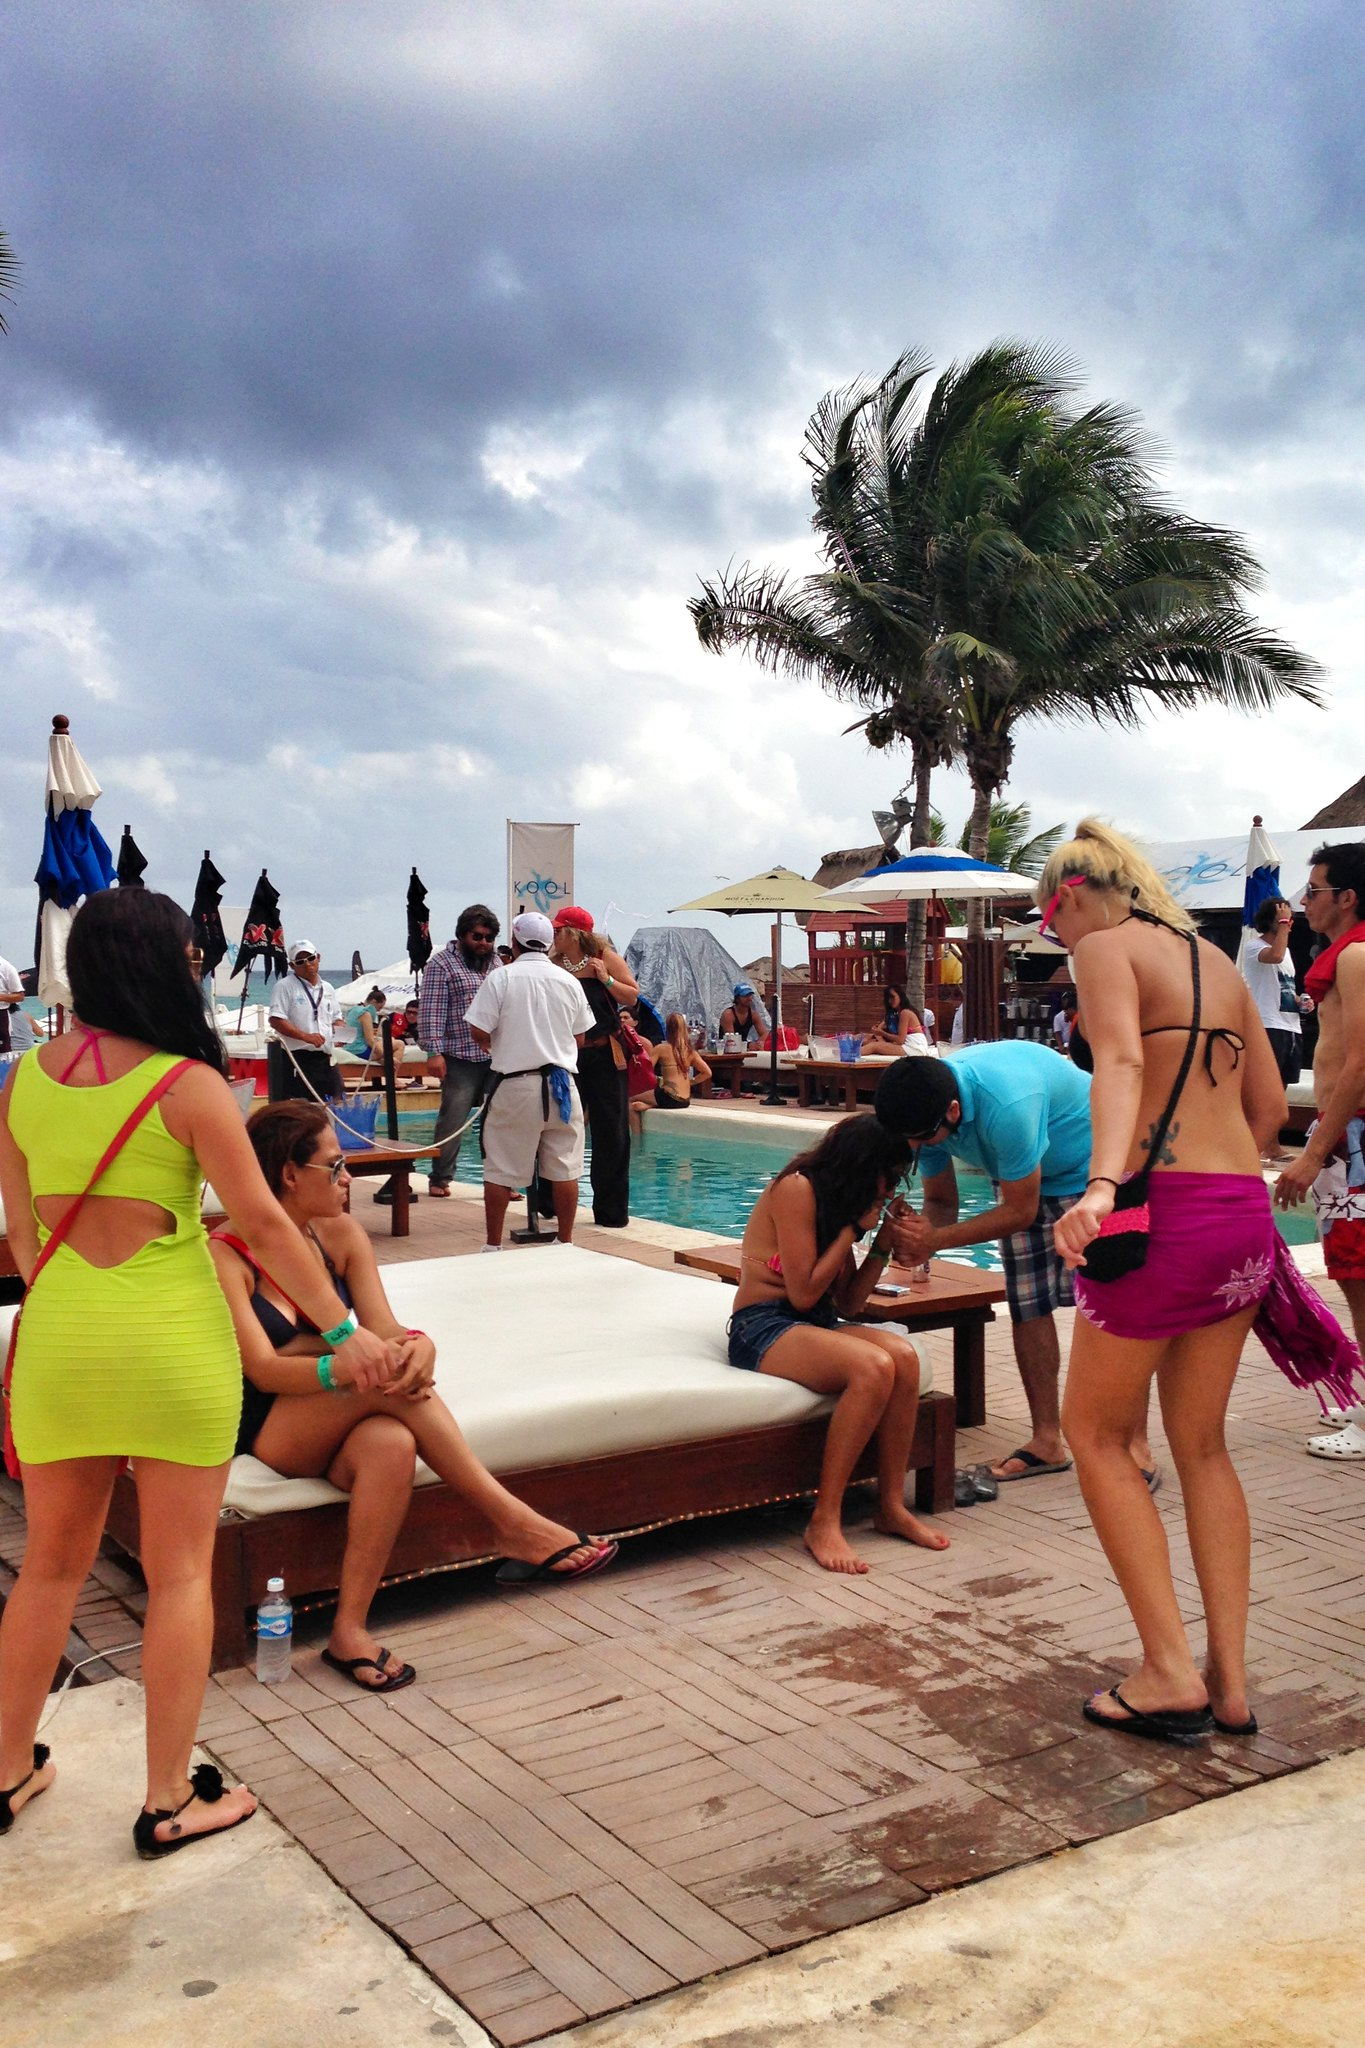 Kool Beach Club Playa Del Carmen Qr Mexico